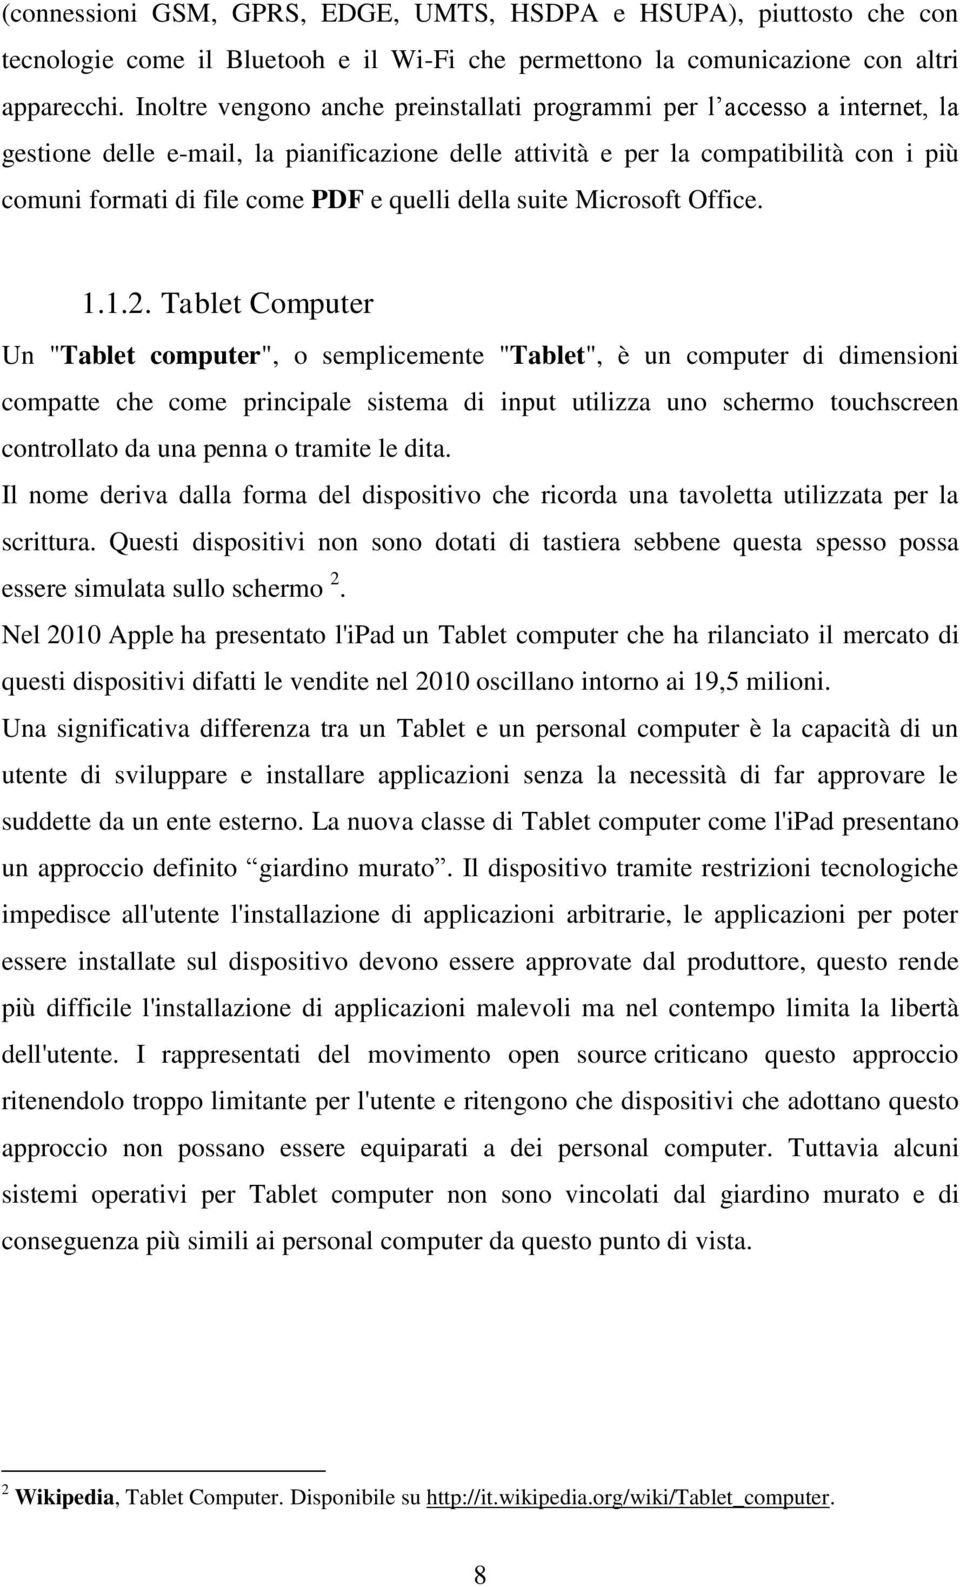 quelli della suite Microsoft Office. 1.1.2.